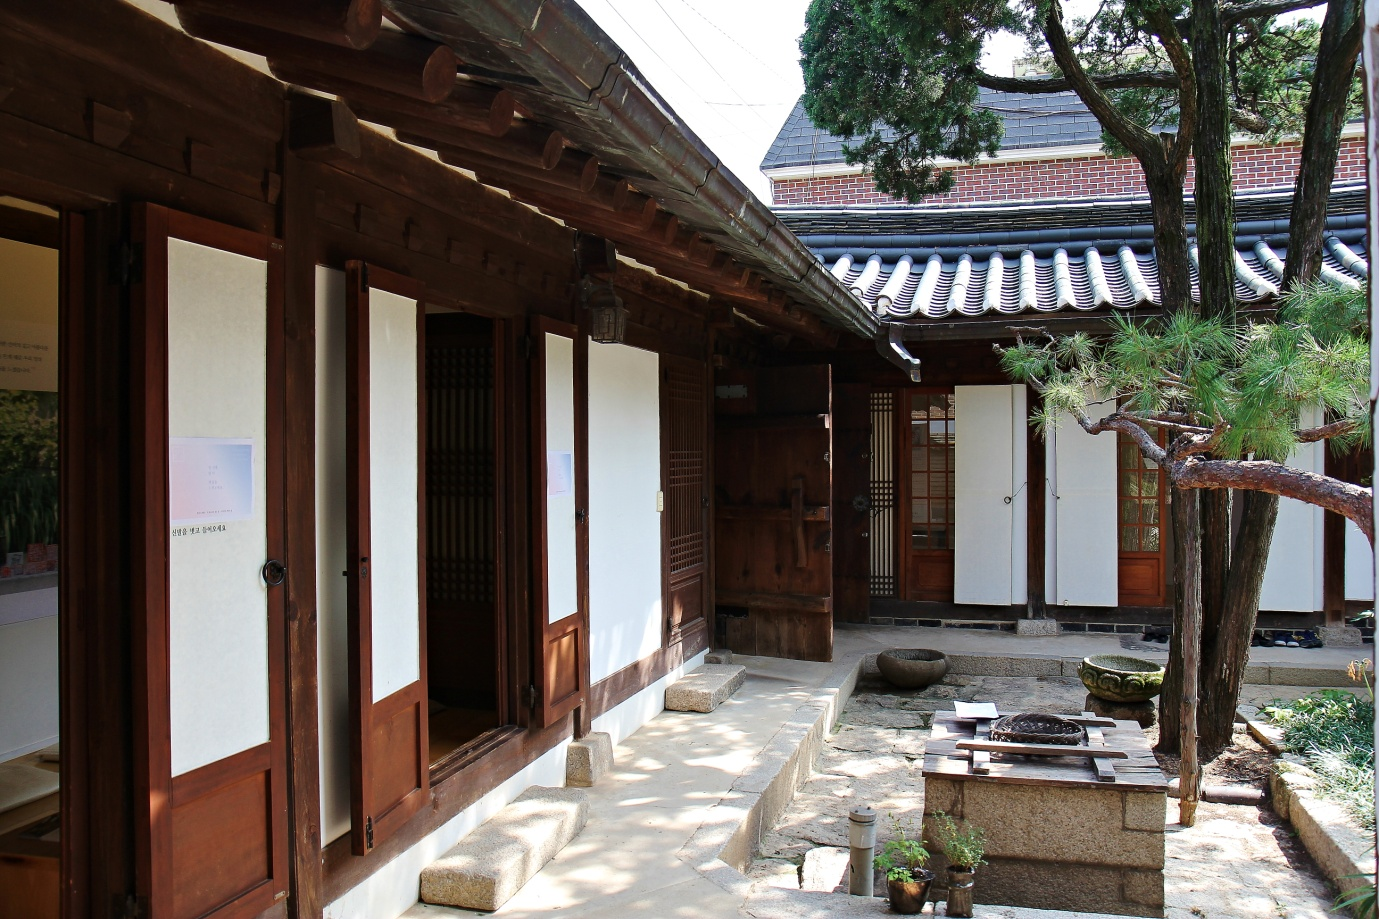 The traditional Korean hanok home